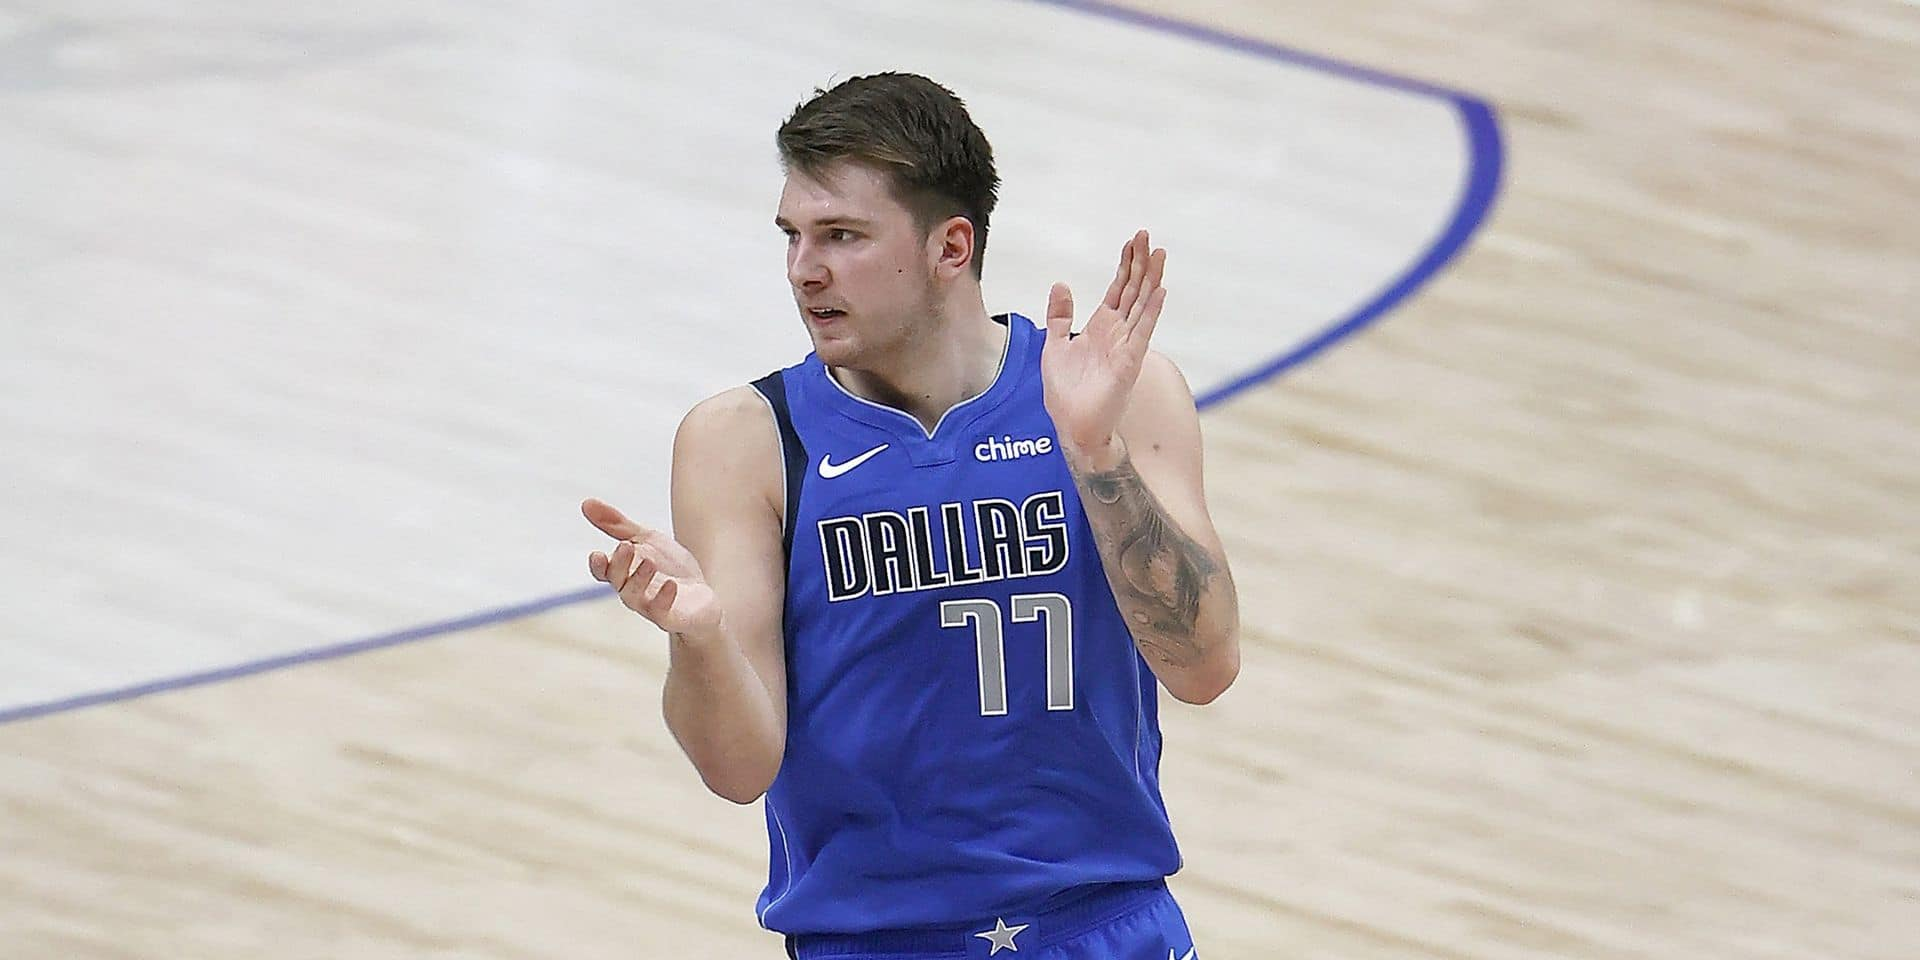 NBA: Doncic signe un triple-double pour Dallas, les Clippers l'emportent à Minnesota